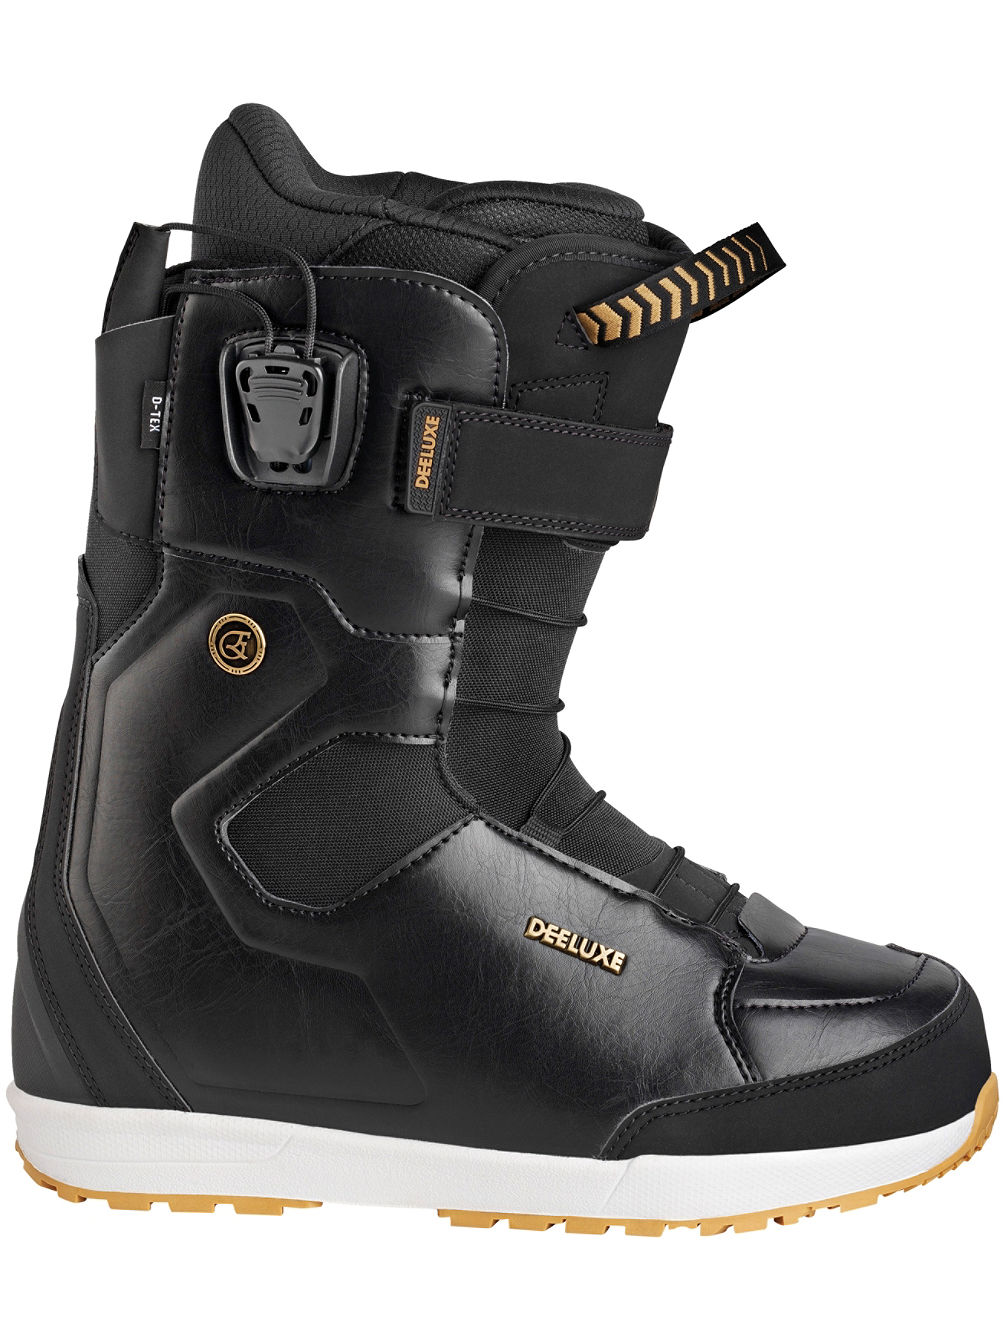 Empire TF 2018 Snowboardboots